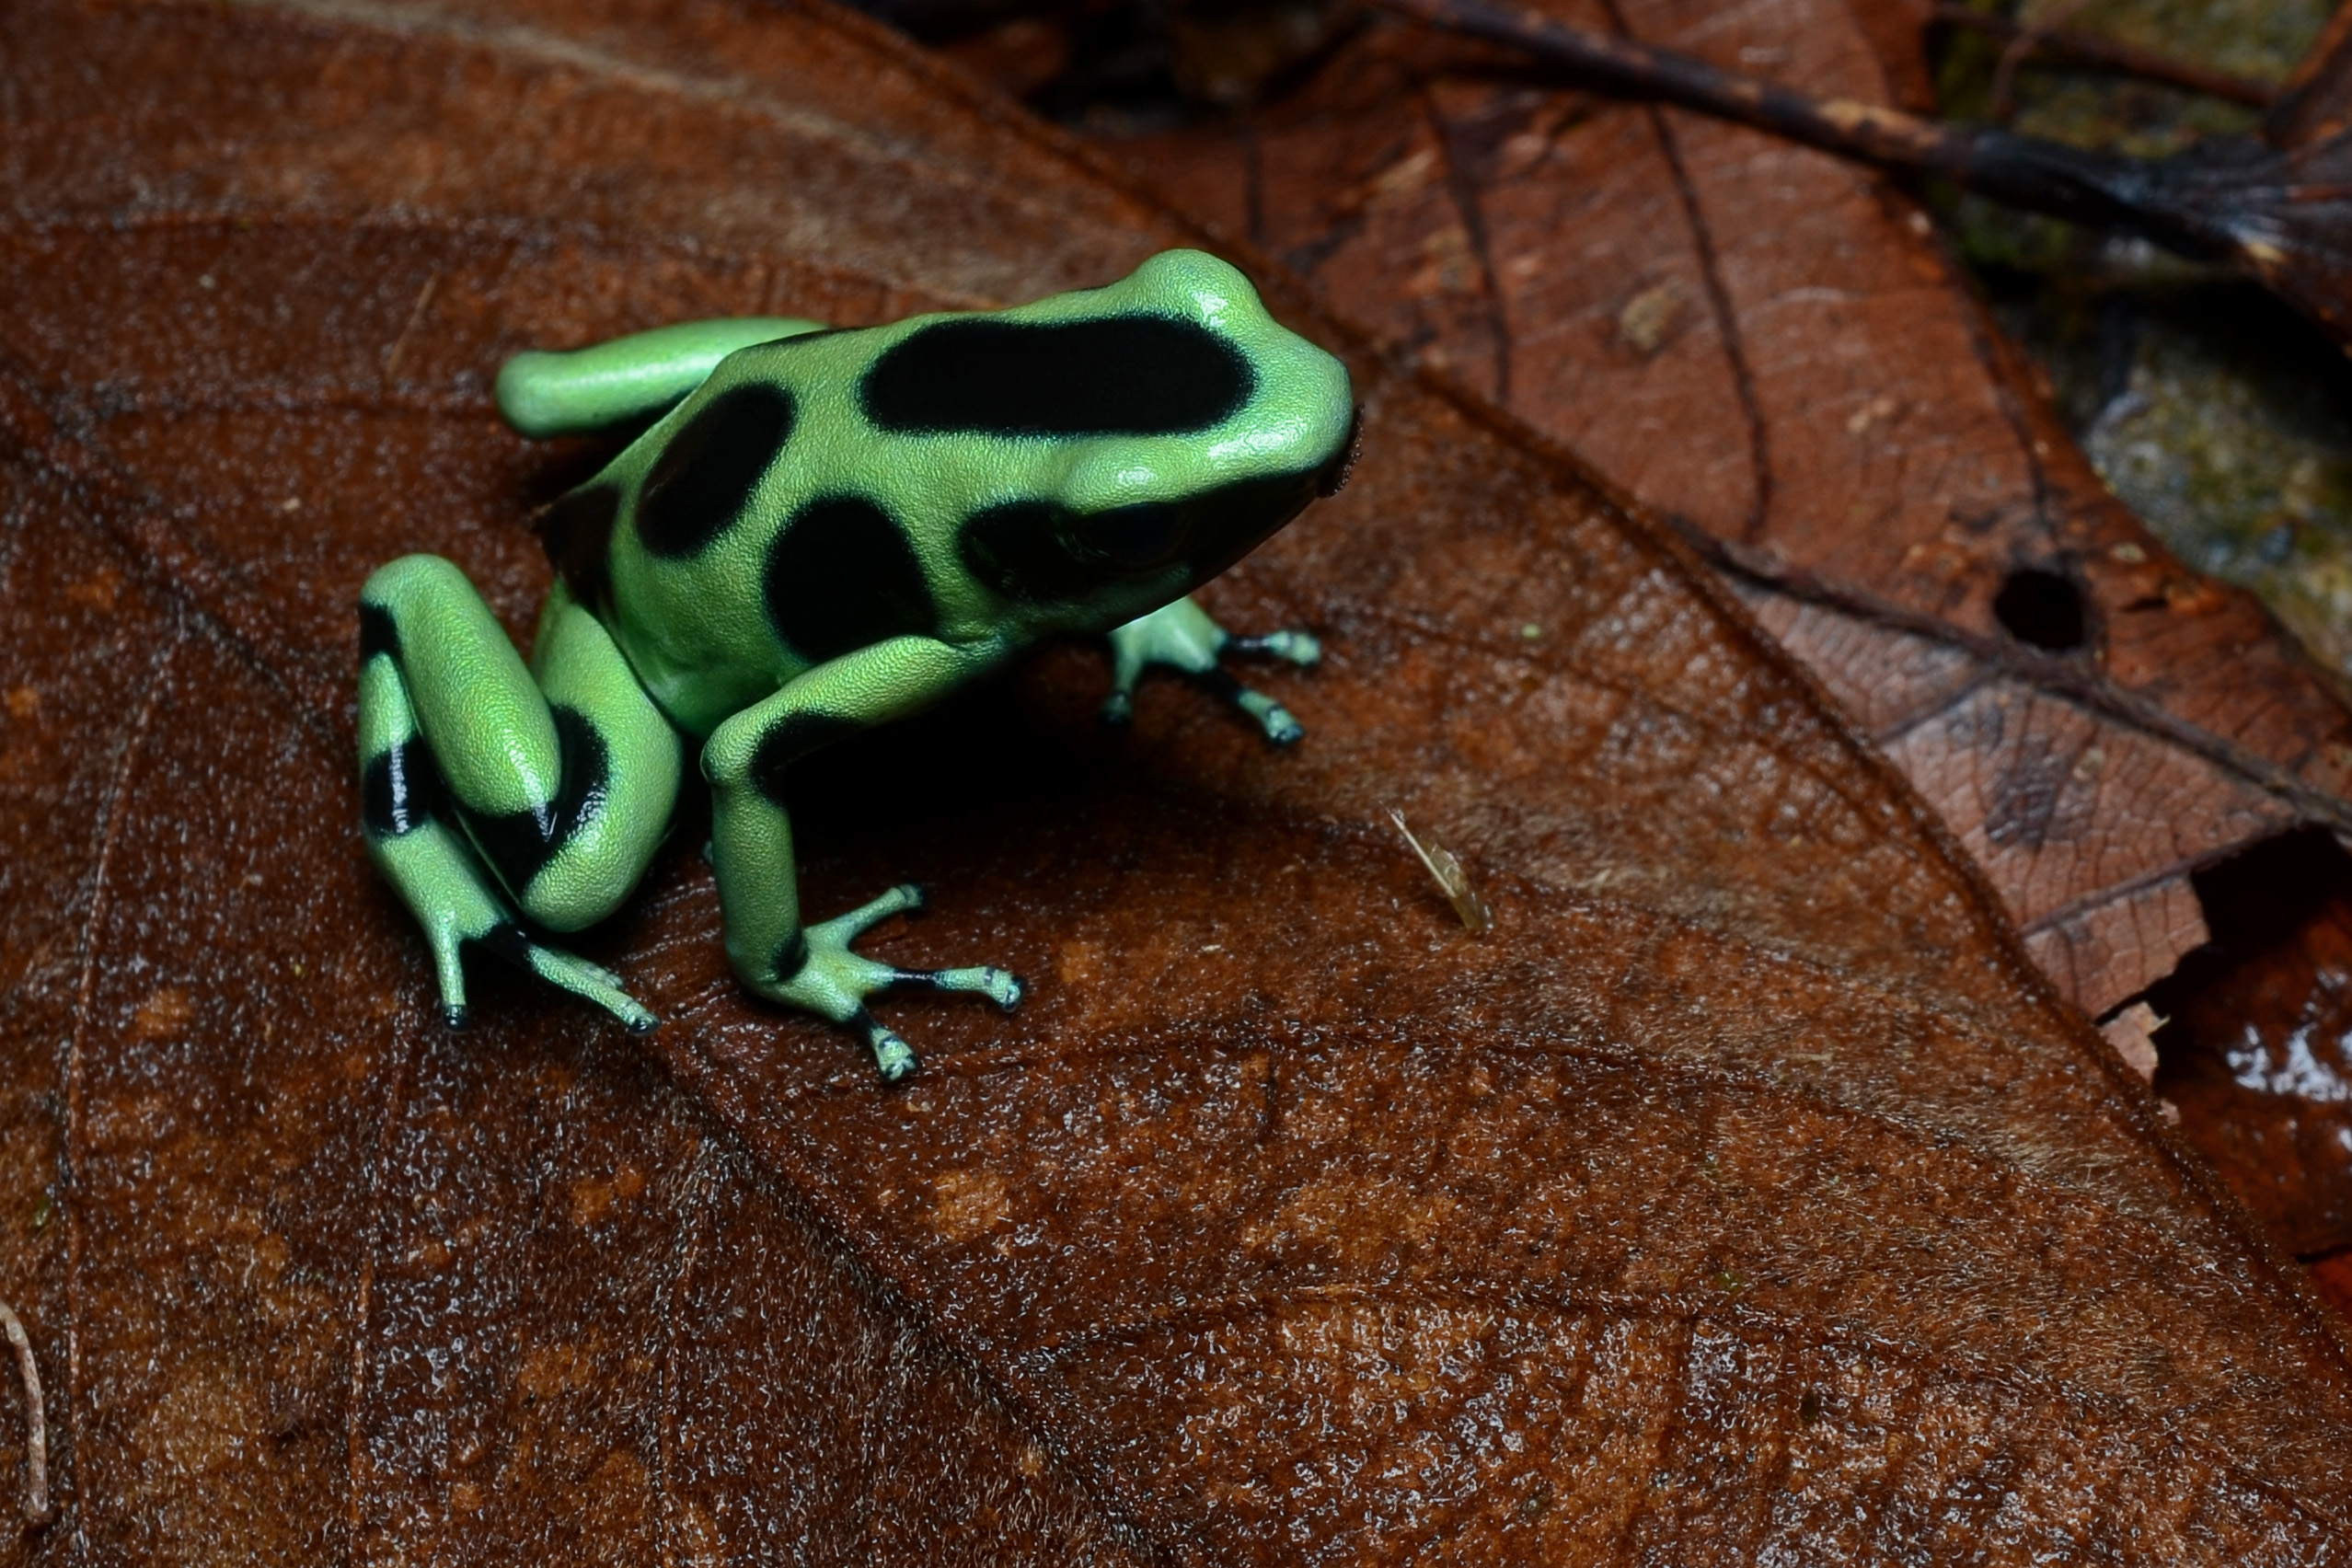 File:Flickr - ggallice - Green and black poison dart frog (2).jpg -  Wikimedia Commons